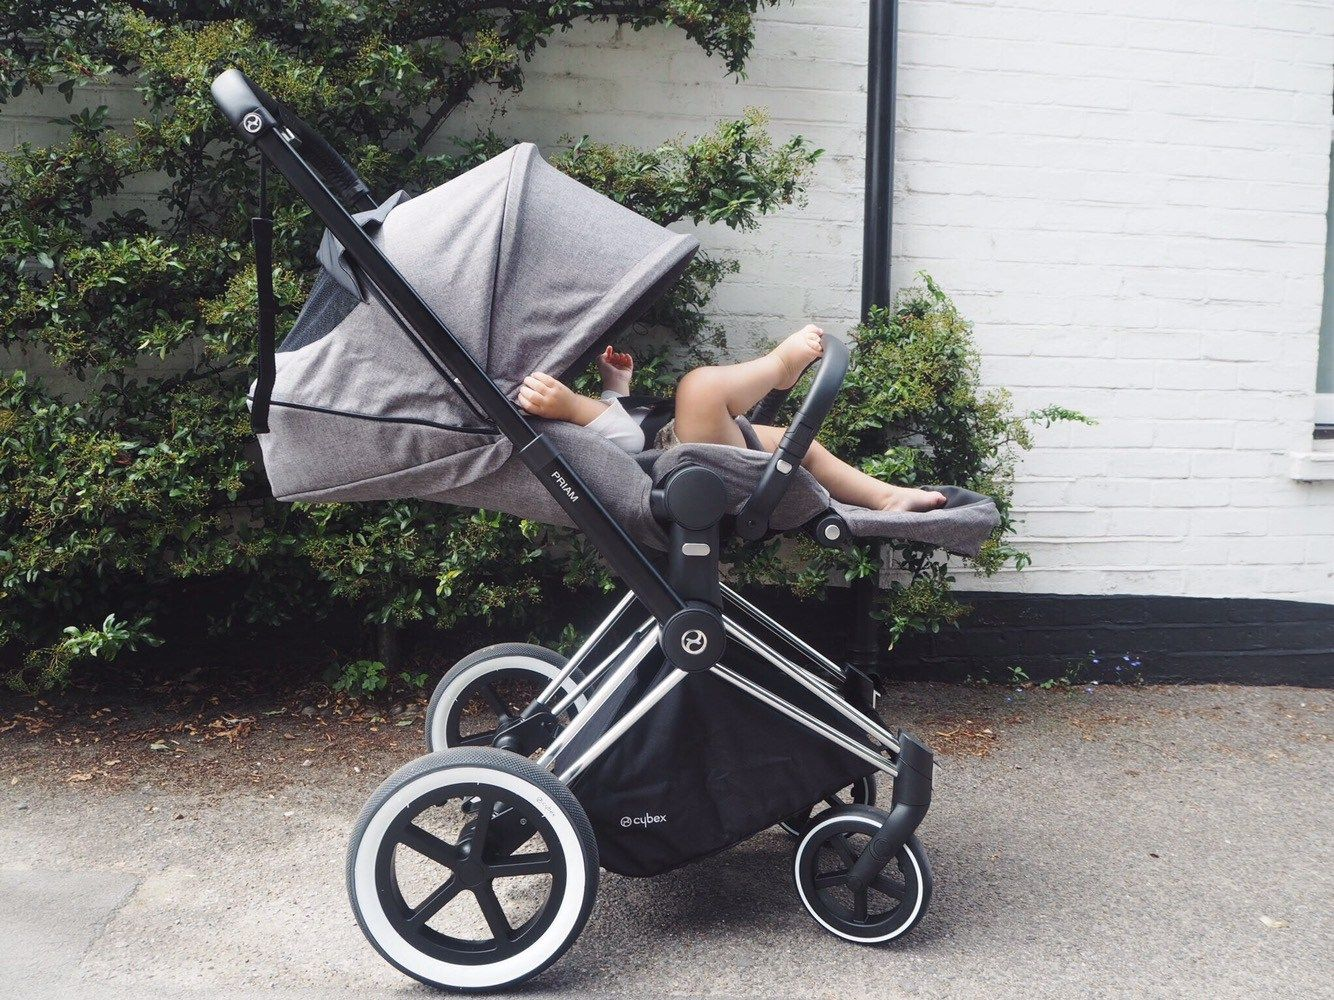 17+ Cybex baby stroller review information